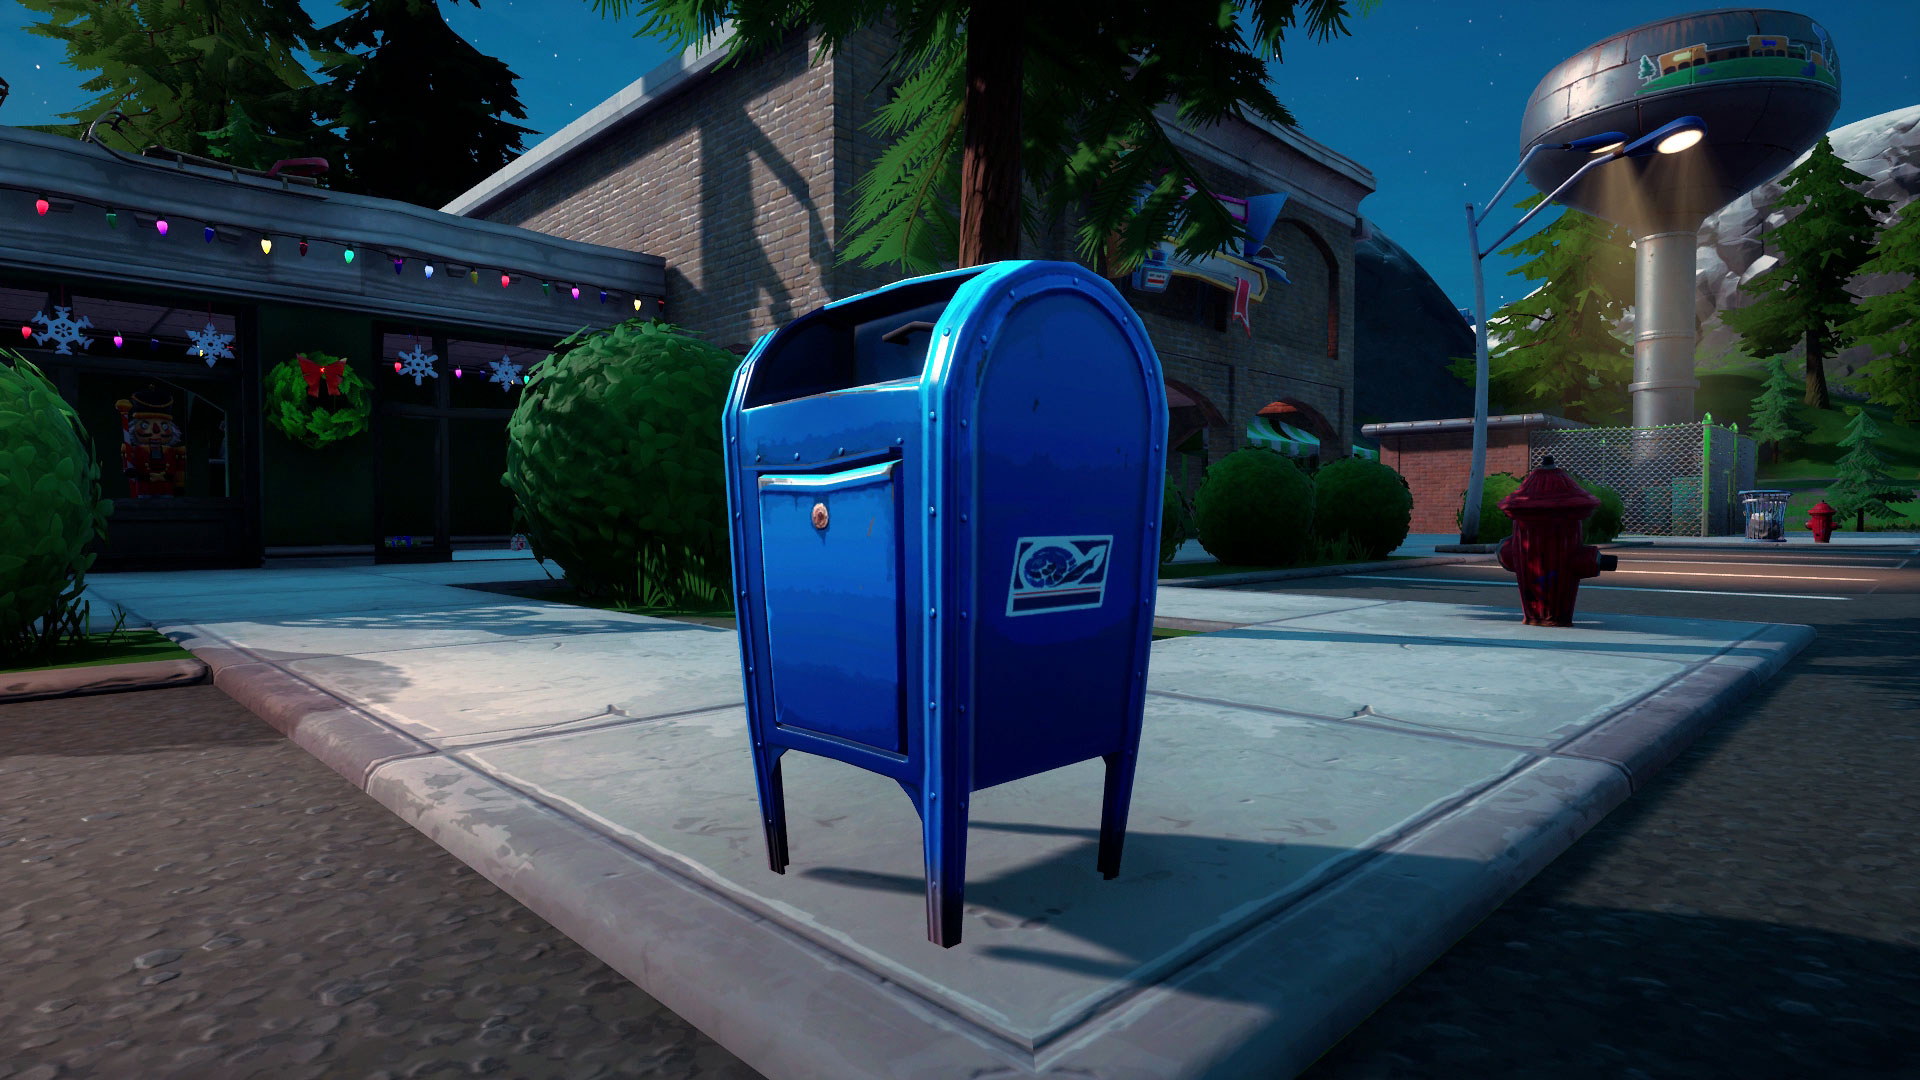 Fortnite Car Parts Locations Where To Find Car Parts In Fortnite Challenges, guides, news, and everything you need to know. fortnite car parts locations where to